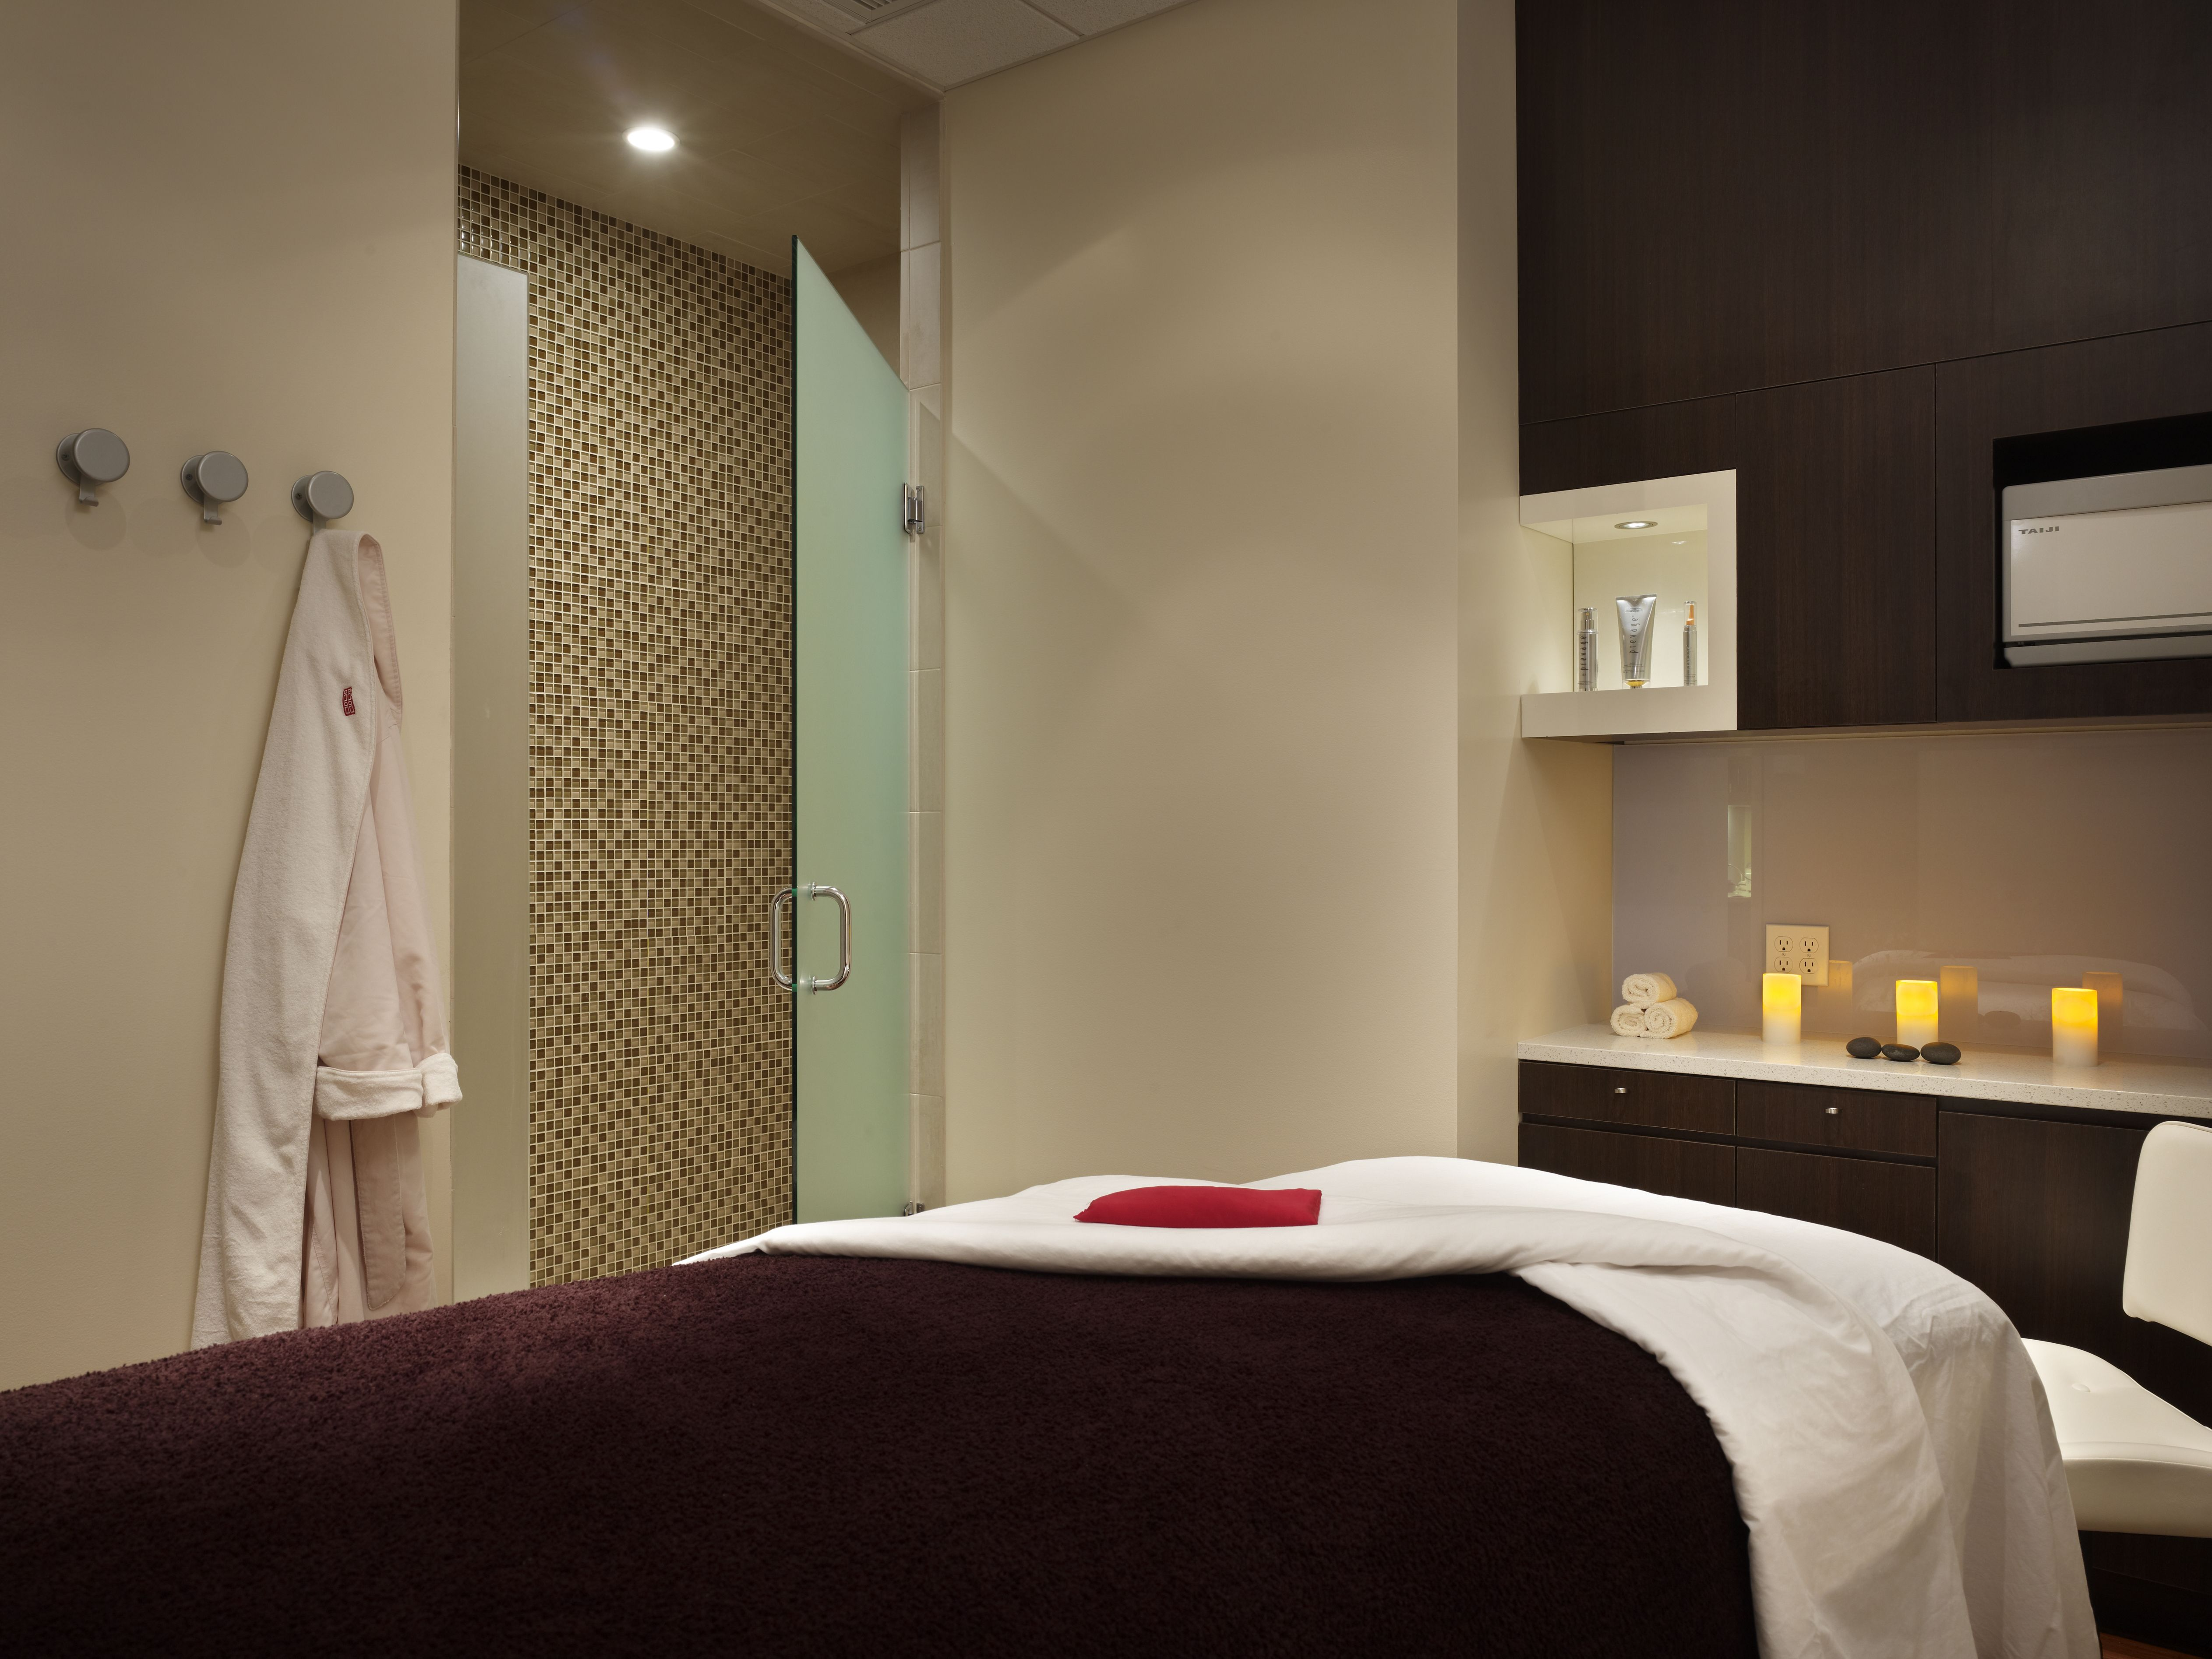 Red Door Spa Travel Pinterest Spa Spa Offers And Doors